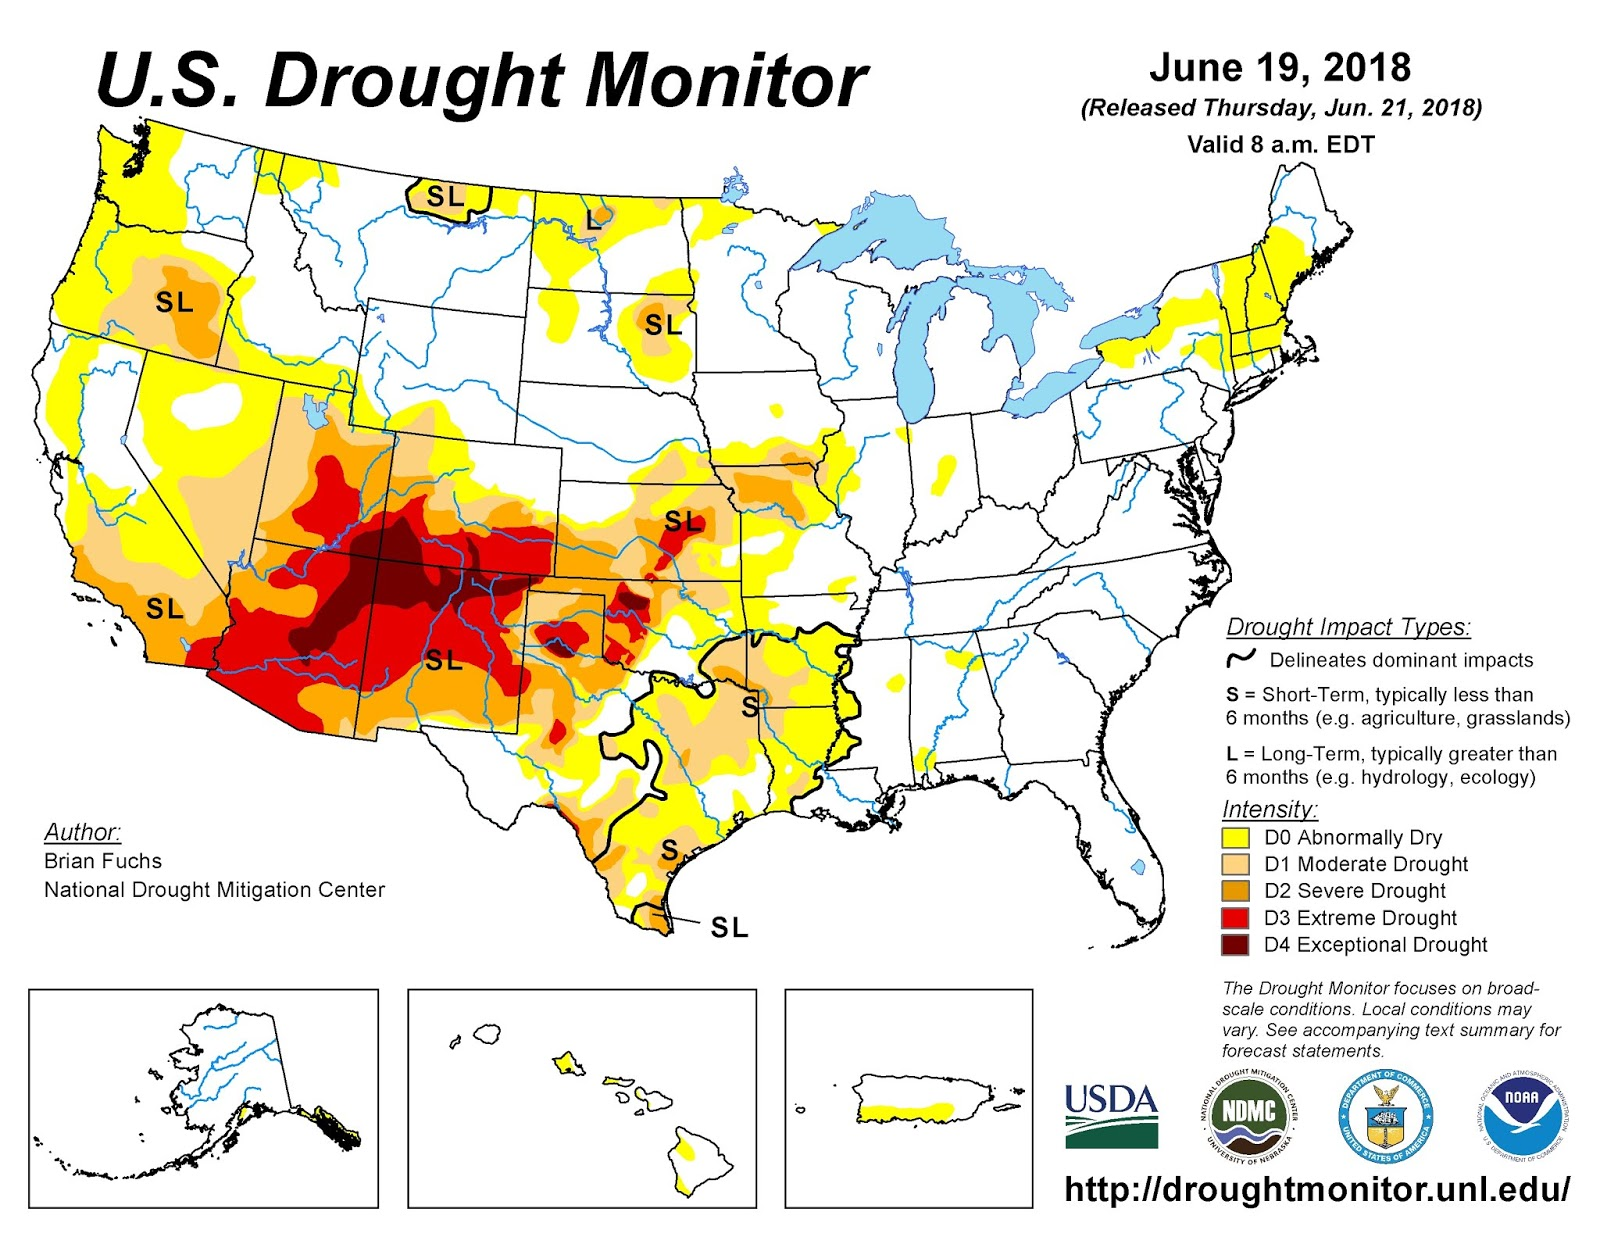 rains is that while the east coast is seeing a lot of rain areas out west are seeing a drought see the areas in red and dark red on the map below